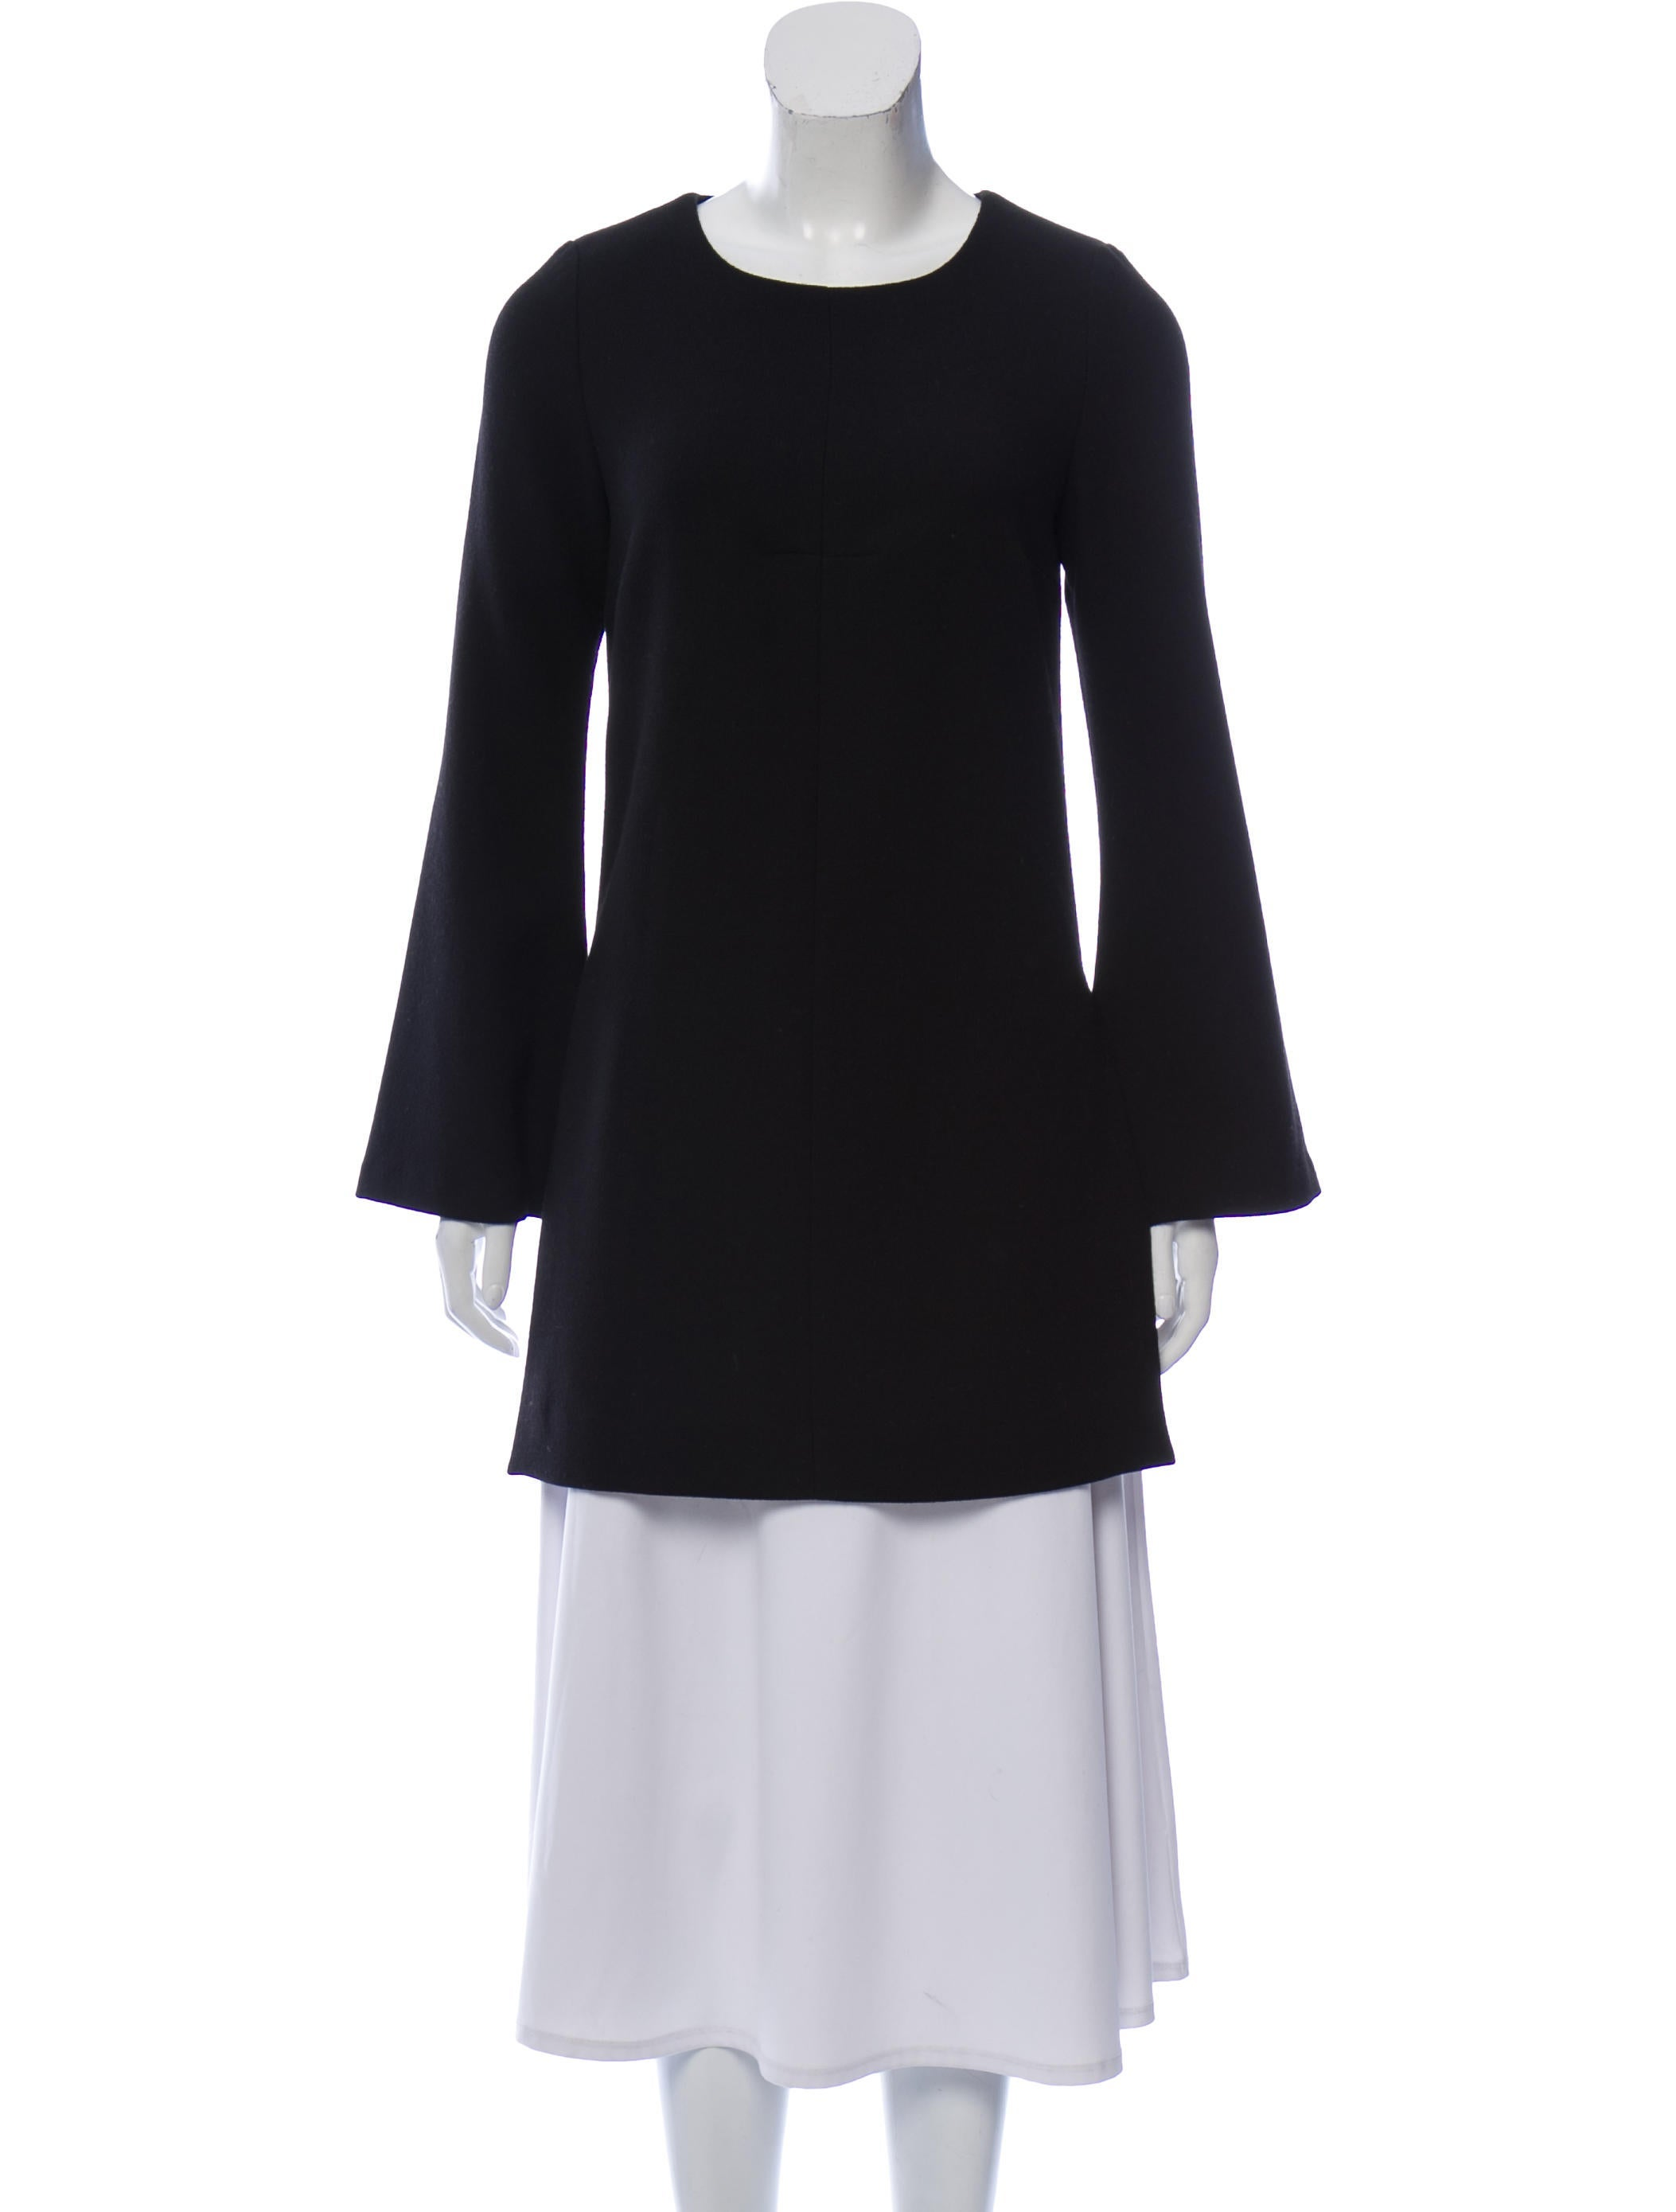 Smythe Wool Scoop Neck Tunic w/ Tags - Clothing -           SMY23954 | The RealReal